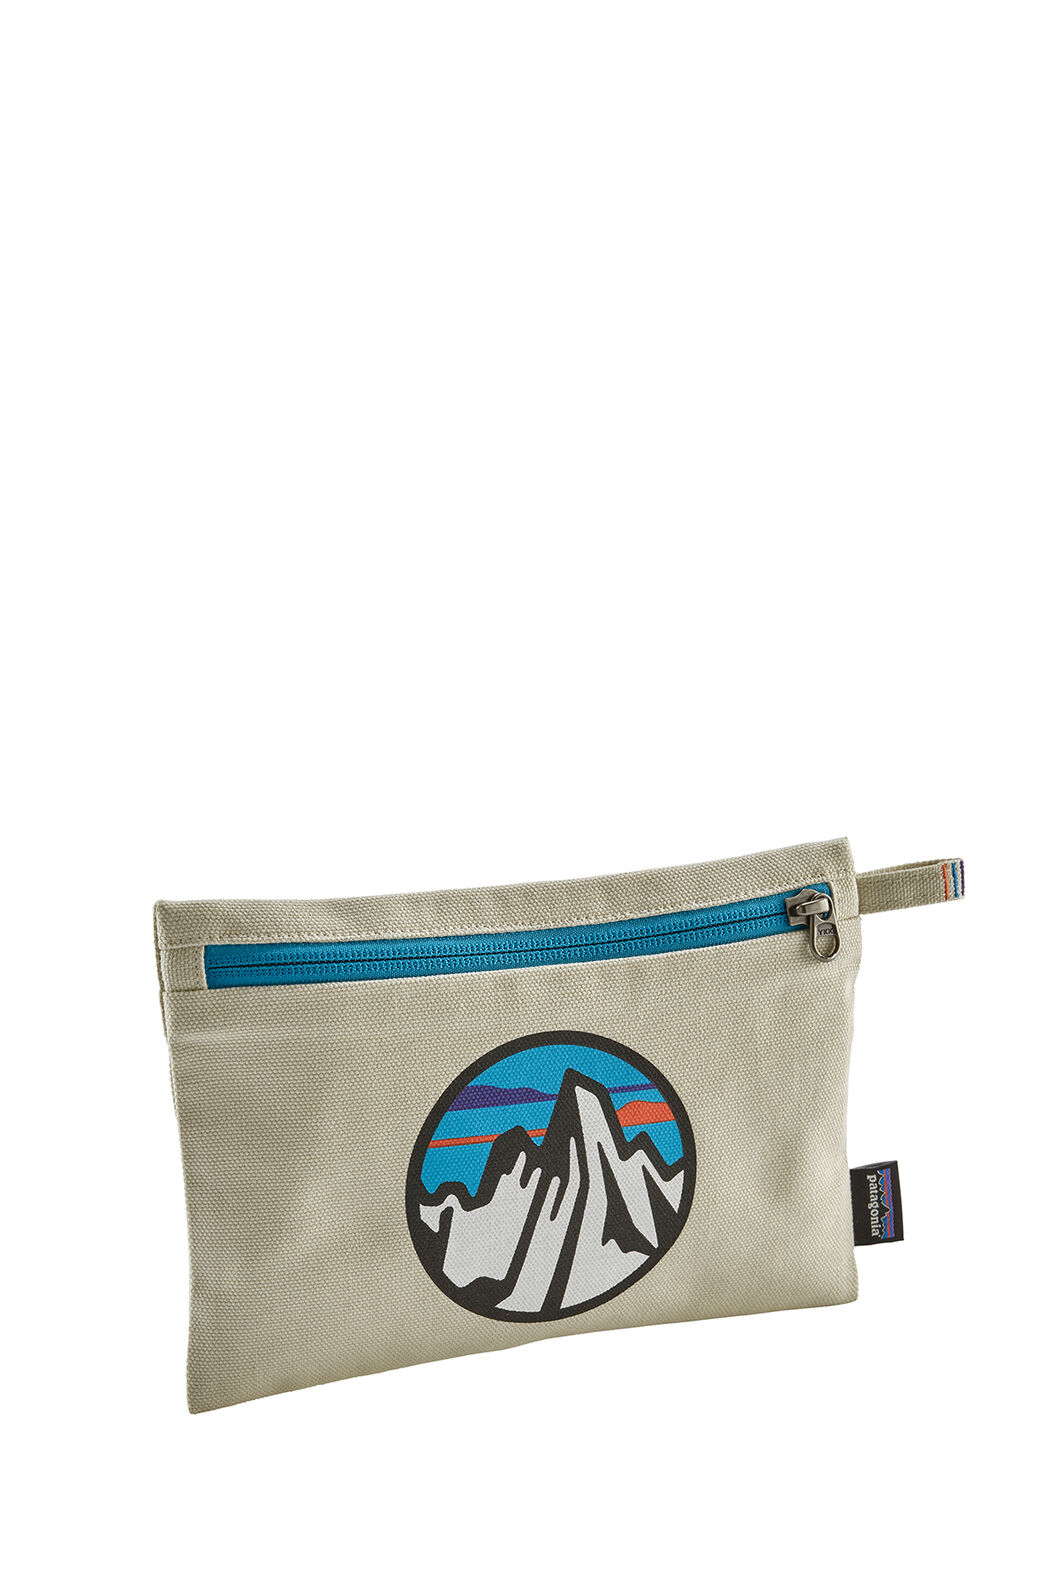 Patagonia Zippered Pouch  , P-6 Logo, hi-res